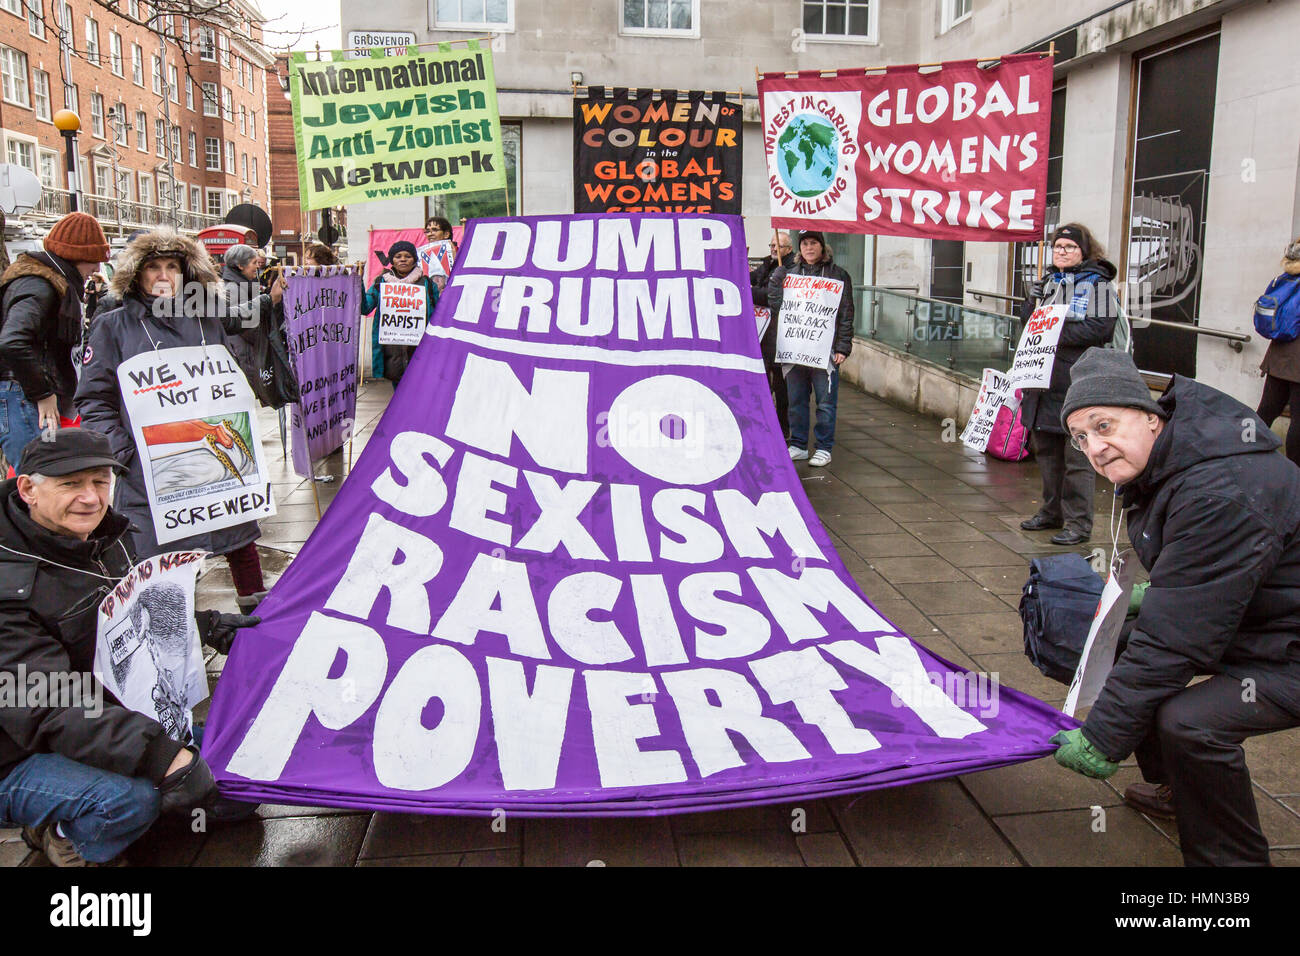 London, UK. 4 February, 2017. Thousands marched through London, from the American embassy in Grosvenor Square to - Stock Image